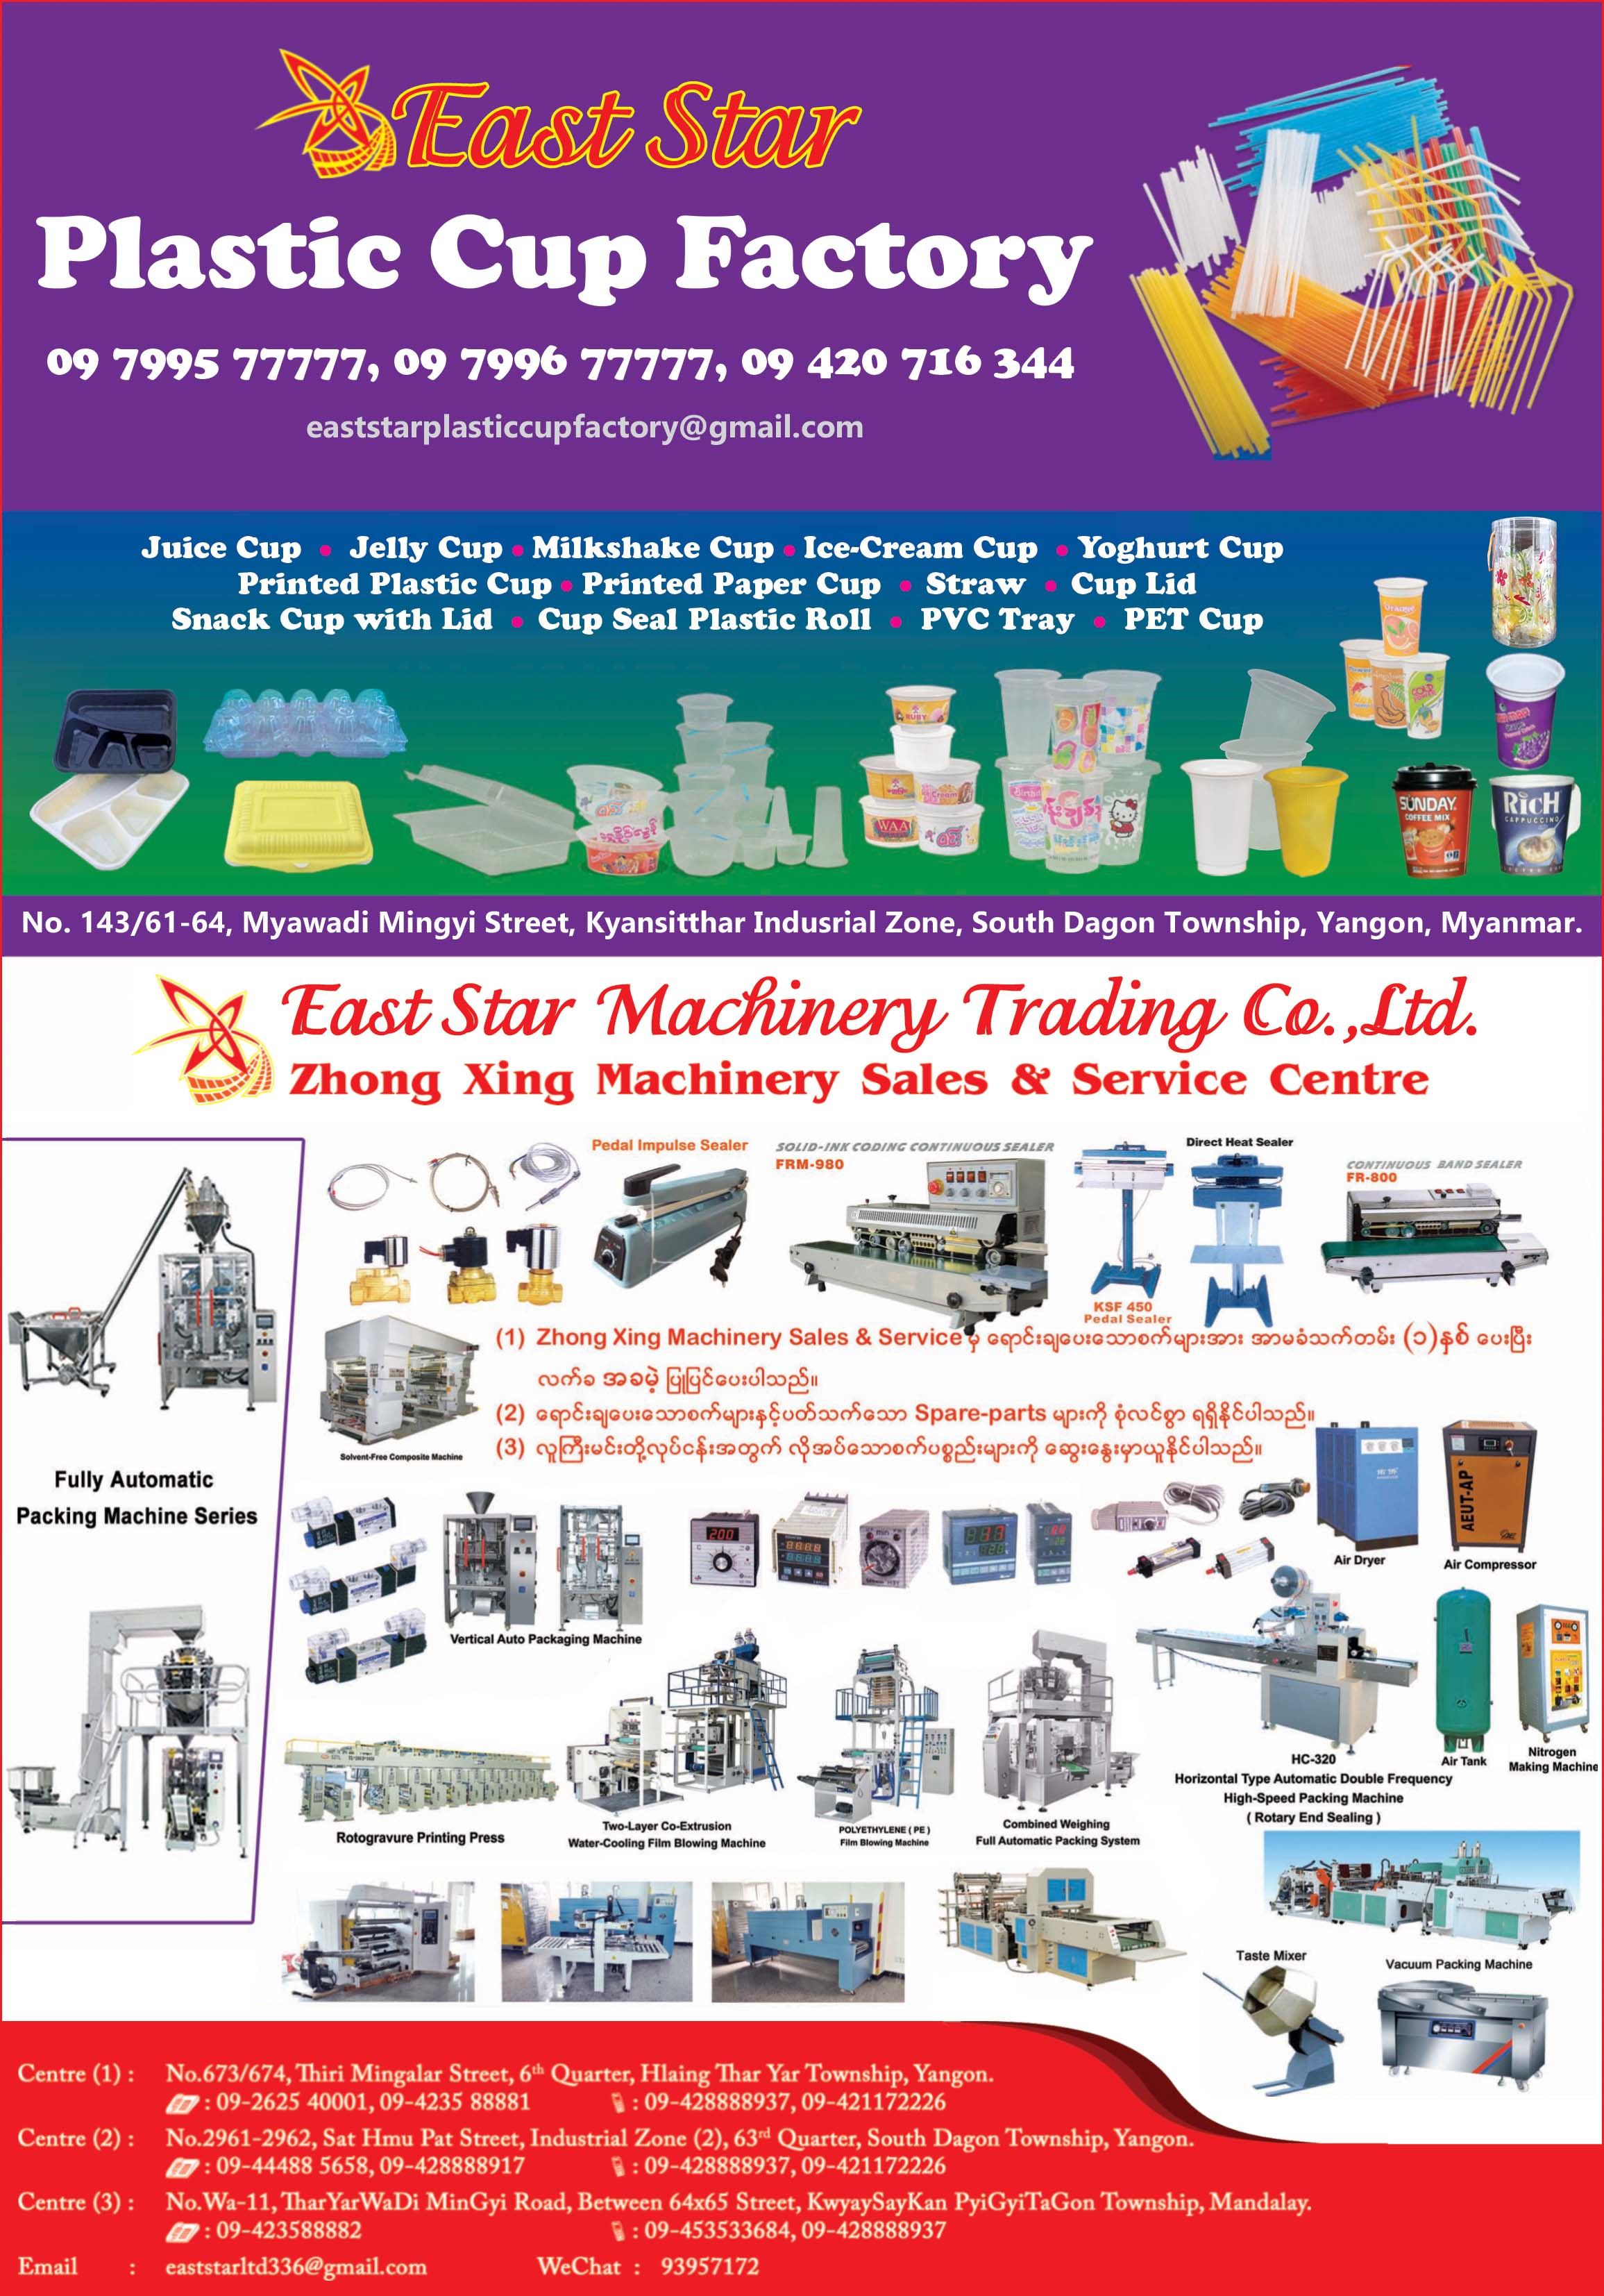 East Star Machinery Trading Co., Ltd. (Zhong Xing)